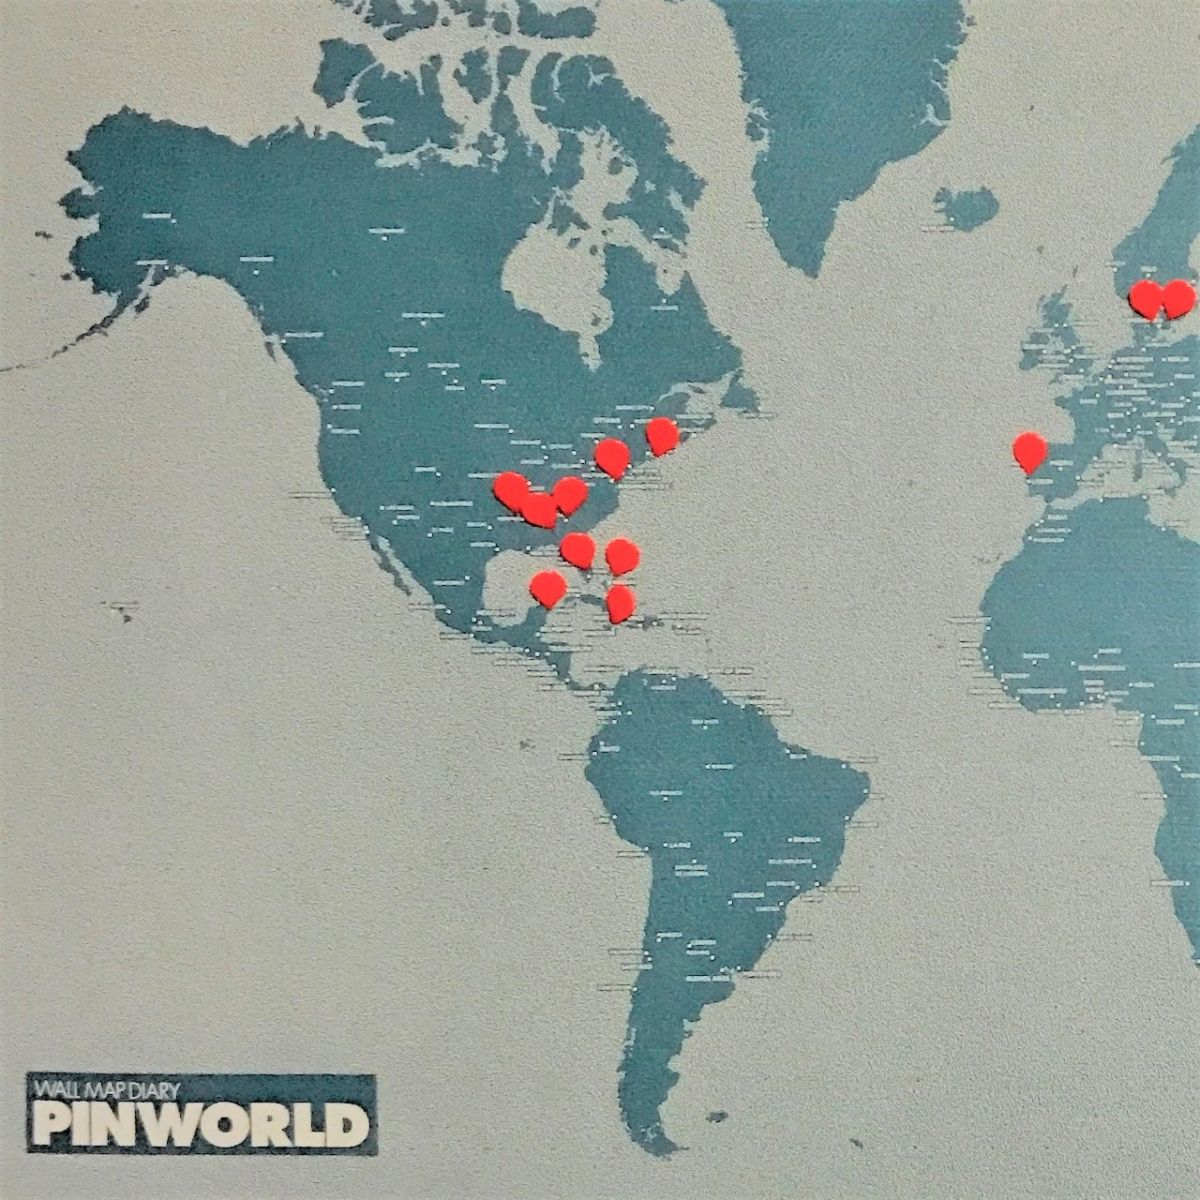 PinWorld pushpin map